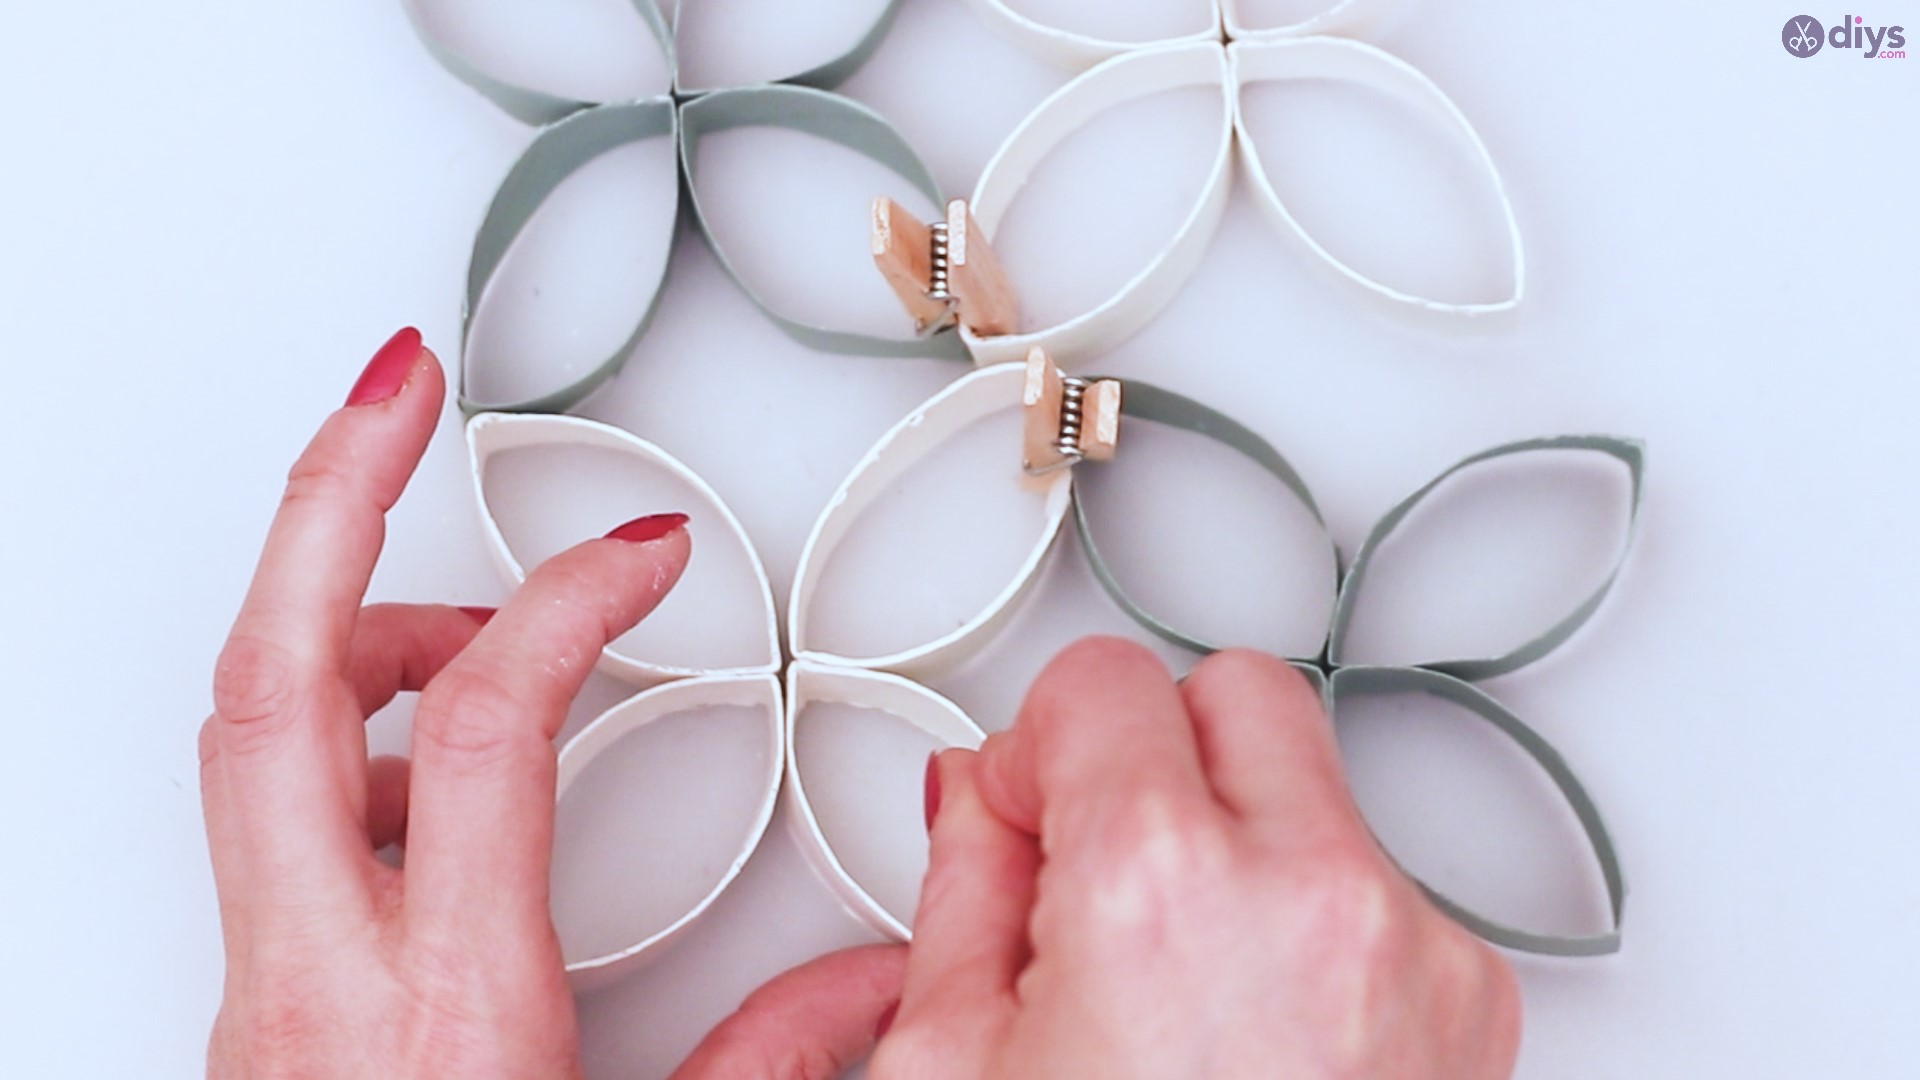 Toilet paper roll wall decor diy project (42)